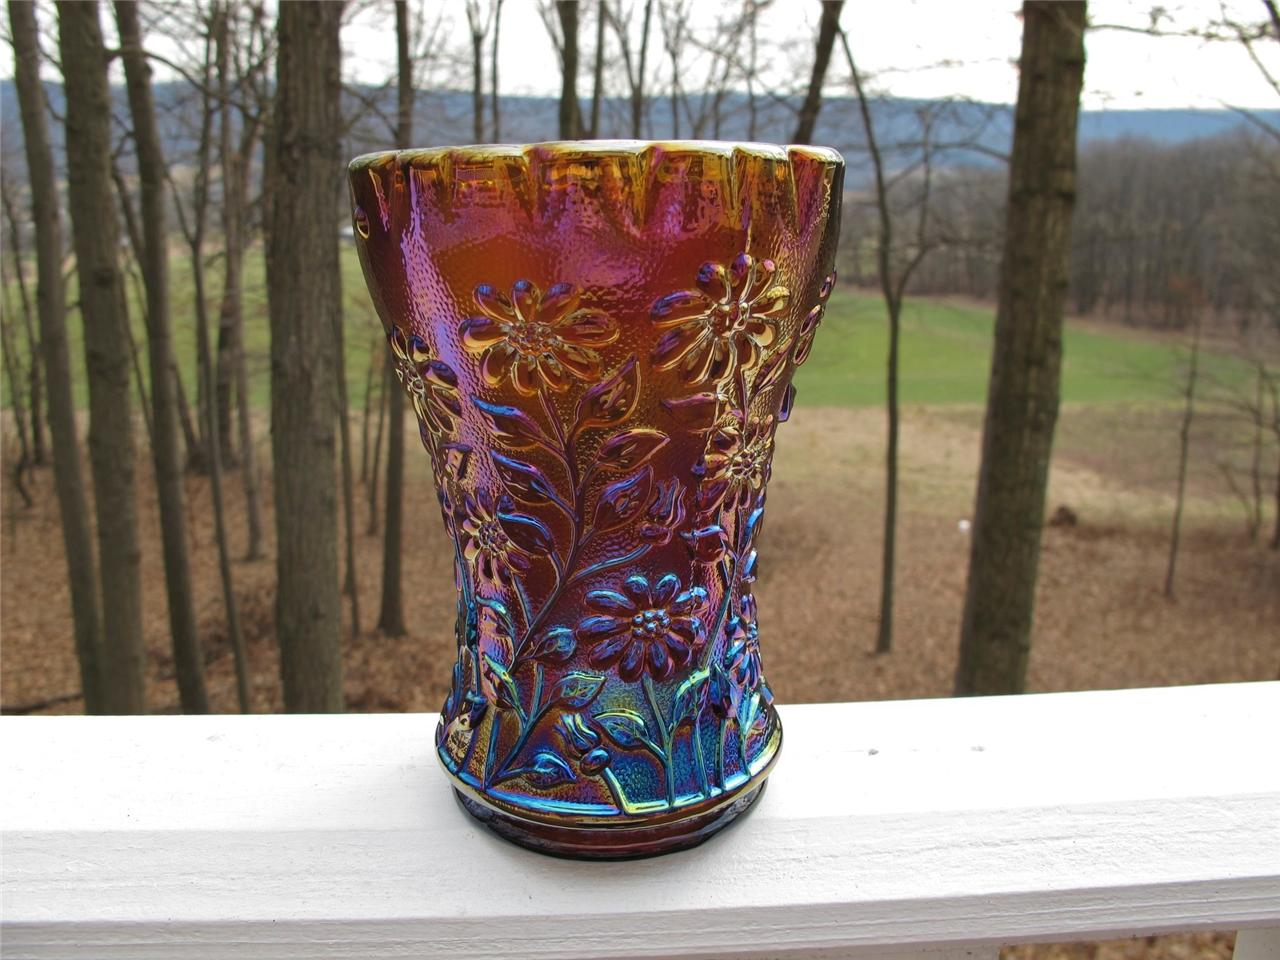 Imperial Amber Daisy Carnival Glass Whimsy Vase Carnival Glass